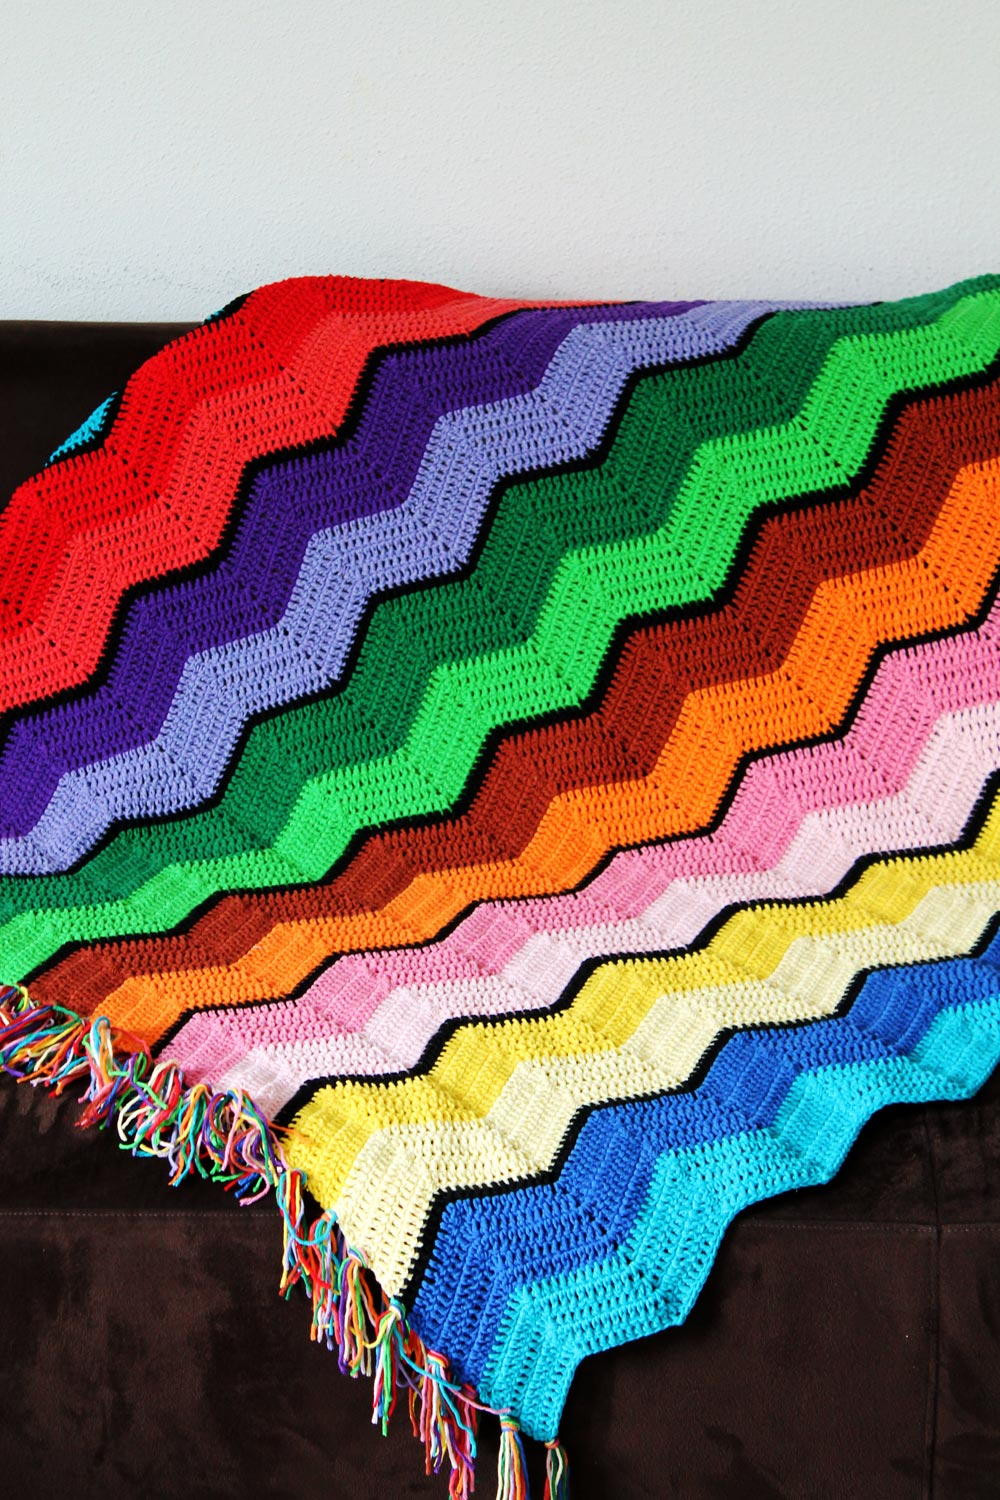 Best Of 51 Free Crochet Blanket Patterns for Beginners Round Afghan Crochet Pattern Of Great 44 Photos Round Afghan Crochet Pattern